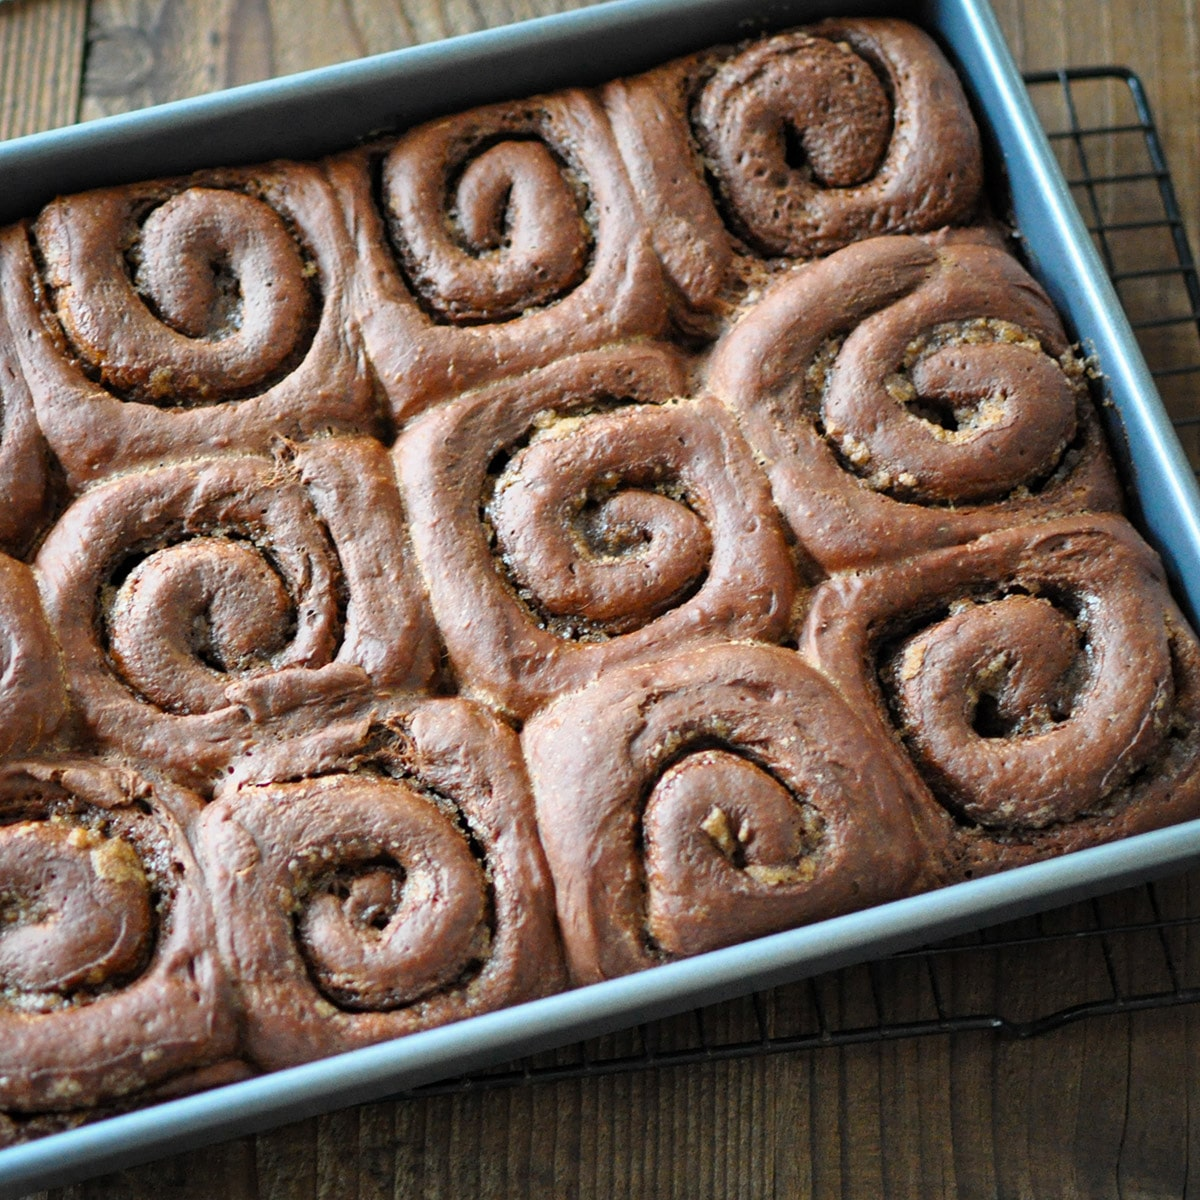 just baked chocolate cinnamon rolls in a baking pan